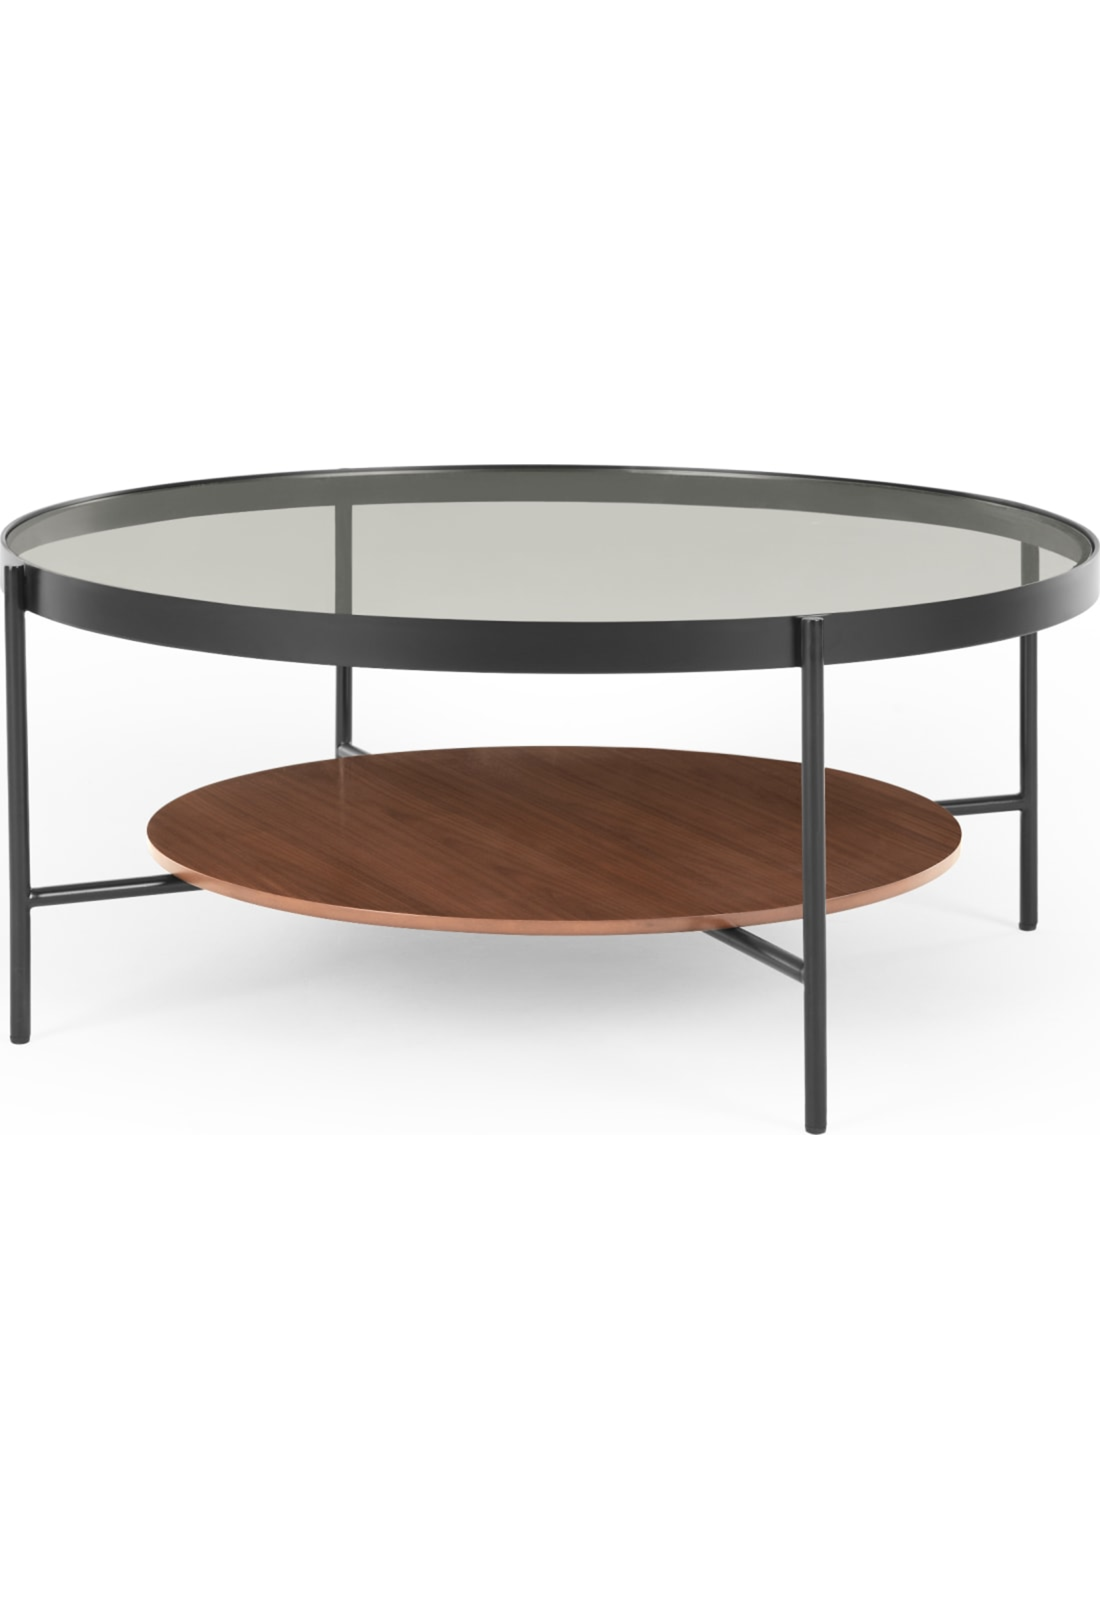 Made Coffee Table Walnut Glass Black Express Delivery New Kameko Coffee Tables Collection From Made Com Coffee Table Walnut Coffee Table Made Coffee Table [ 1600 x 1100 Pixel ]